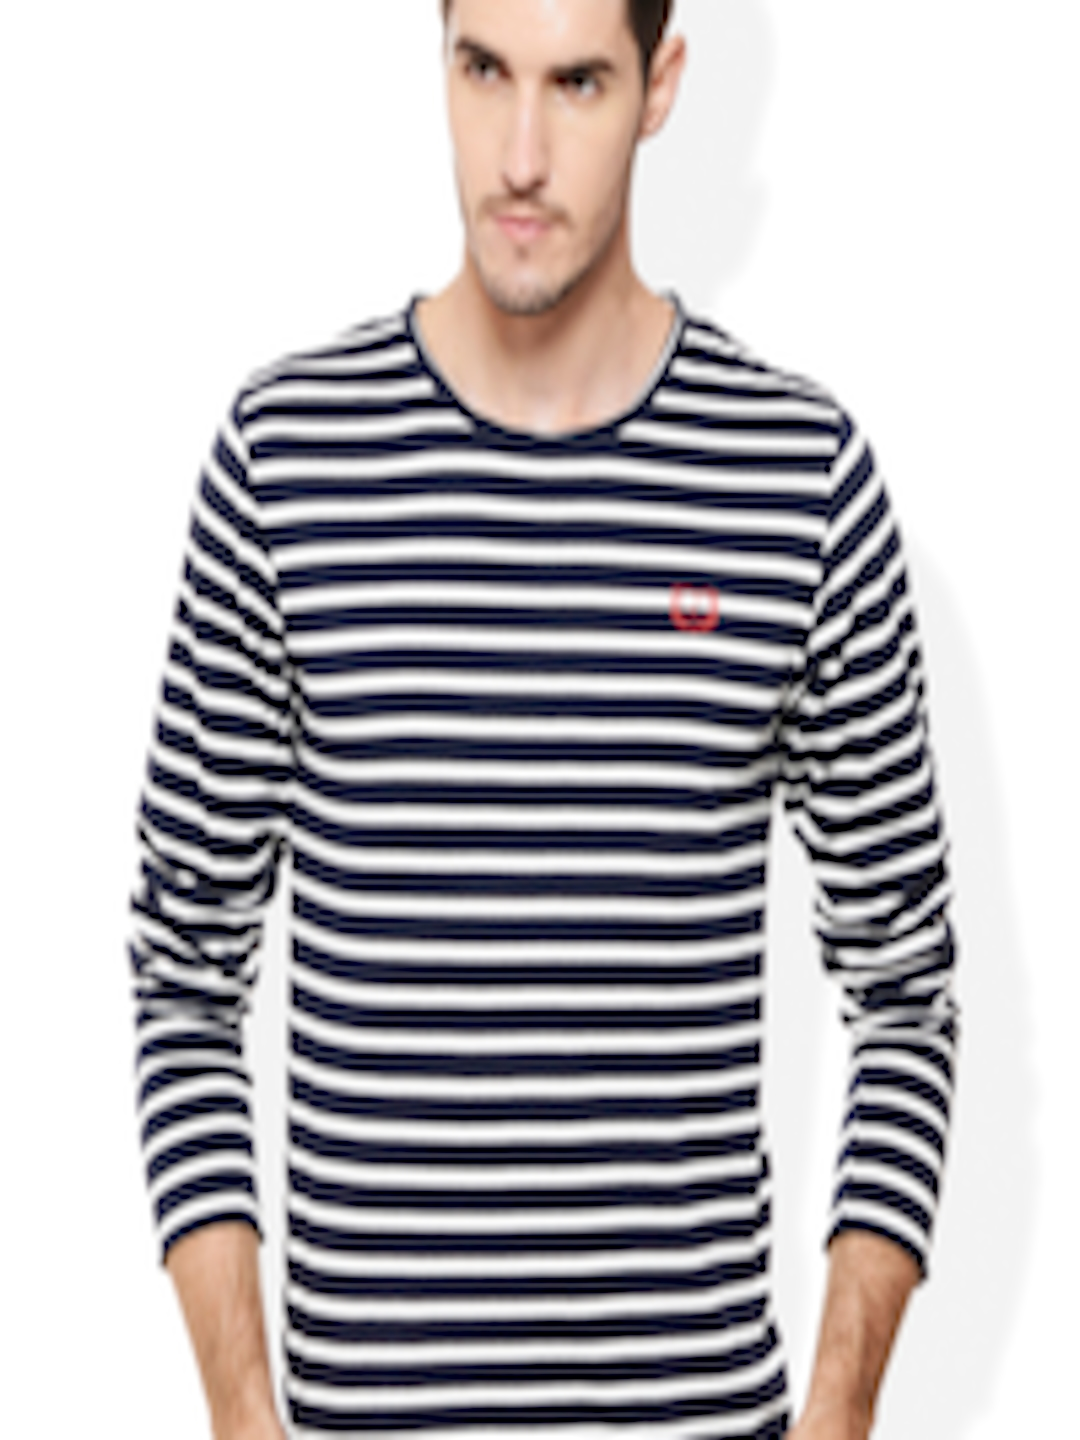 249b5d16cef Buy Rigo Navy   White Striped Smart Fit T Shirt - Tshirts for Men 1484682